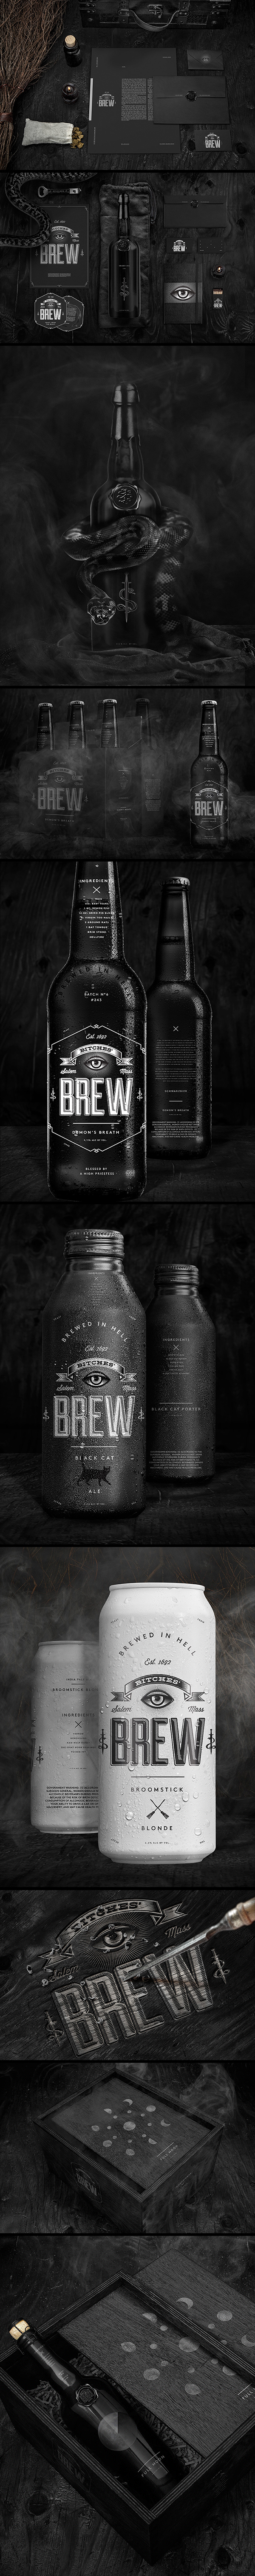 inspirations graphiques identity Wedge & Lever | Bitches brew